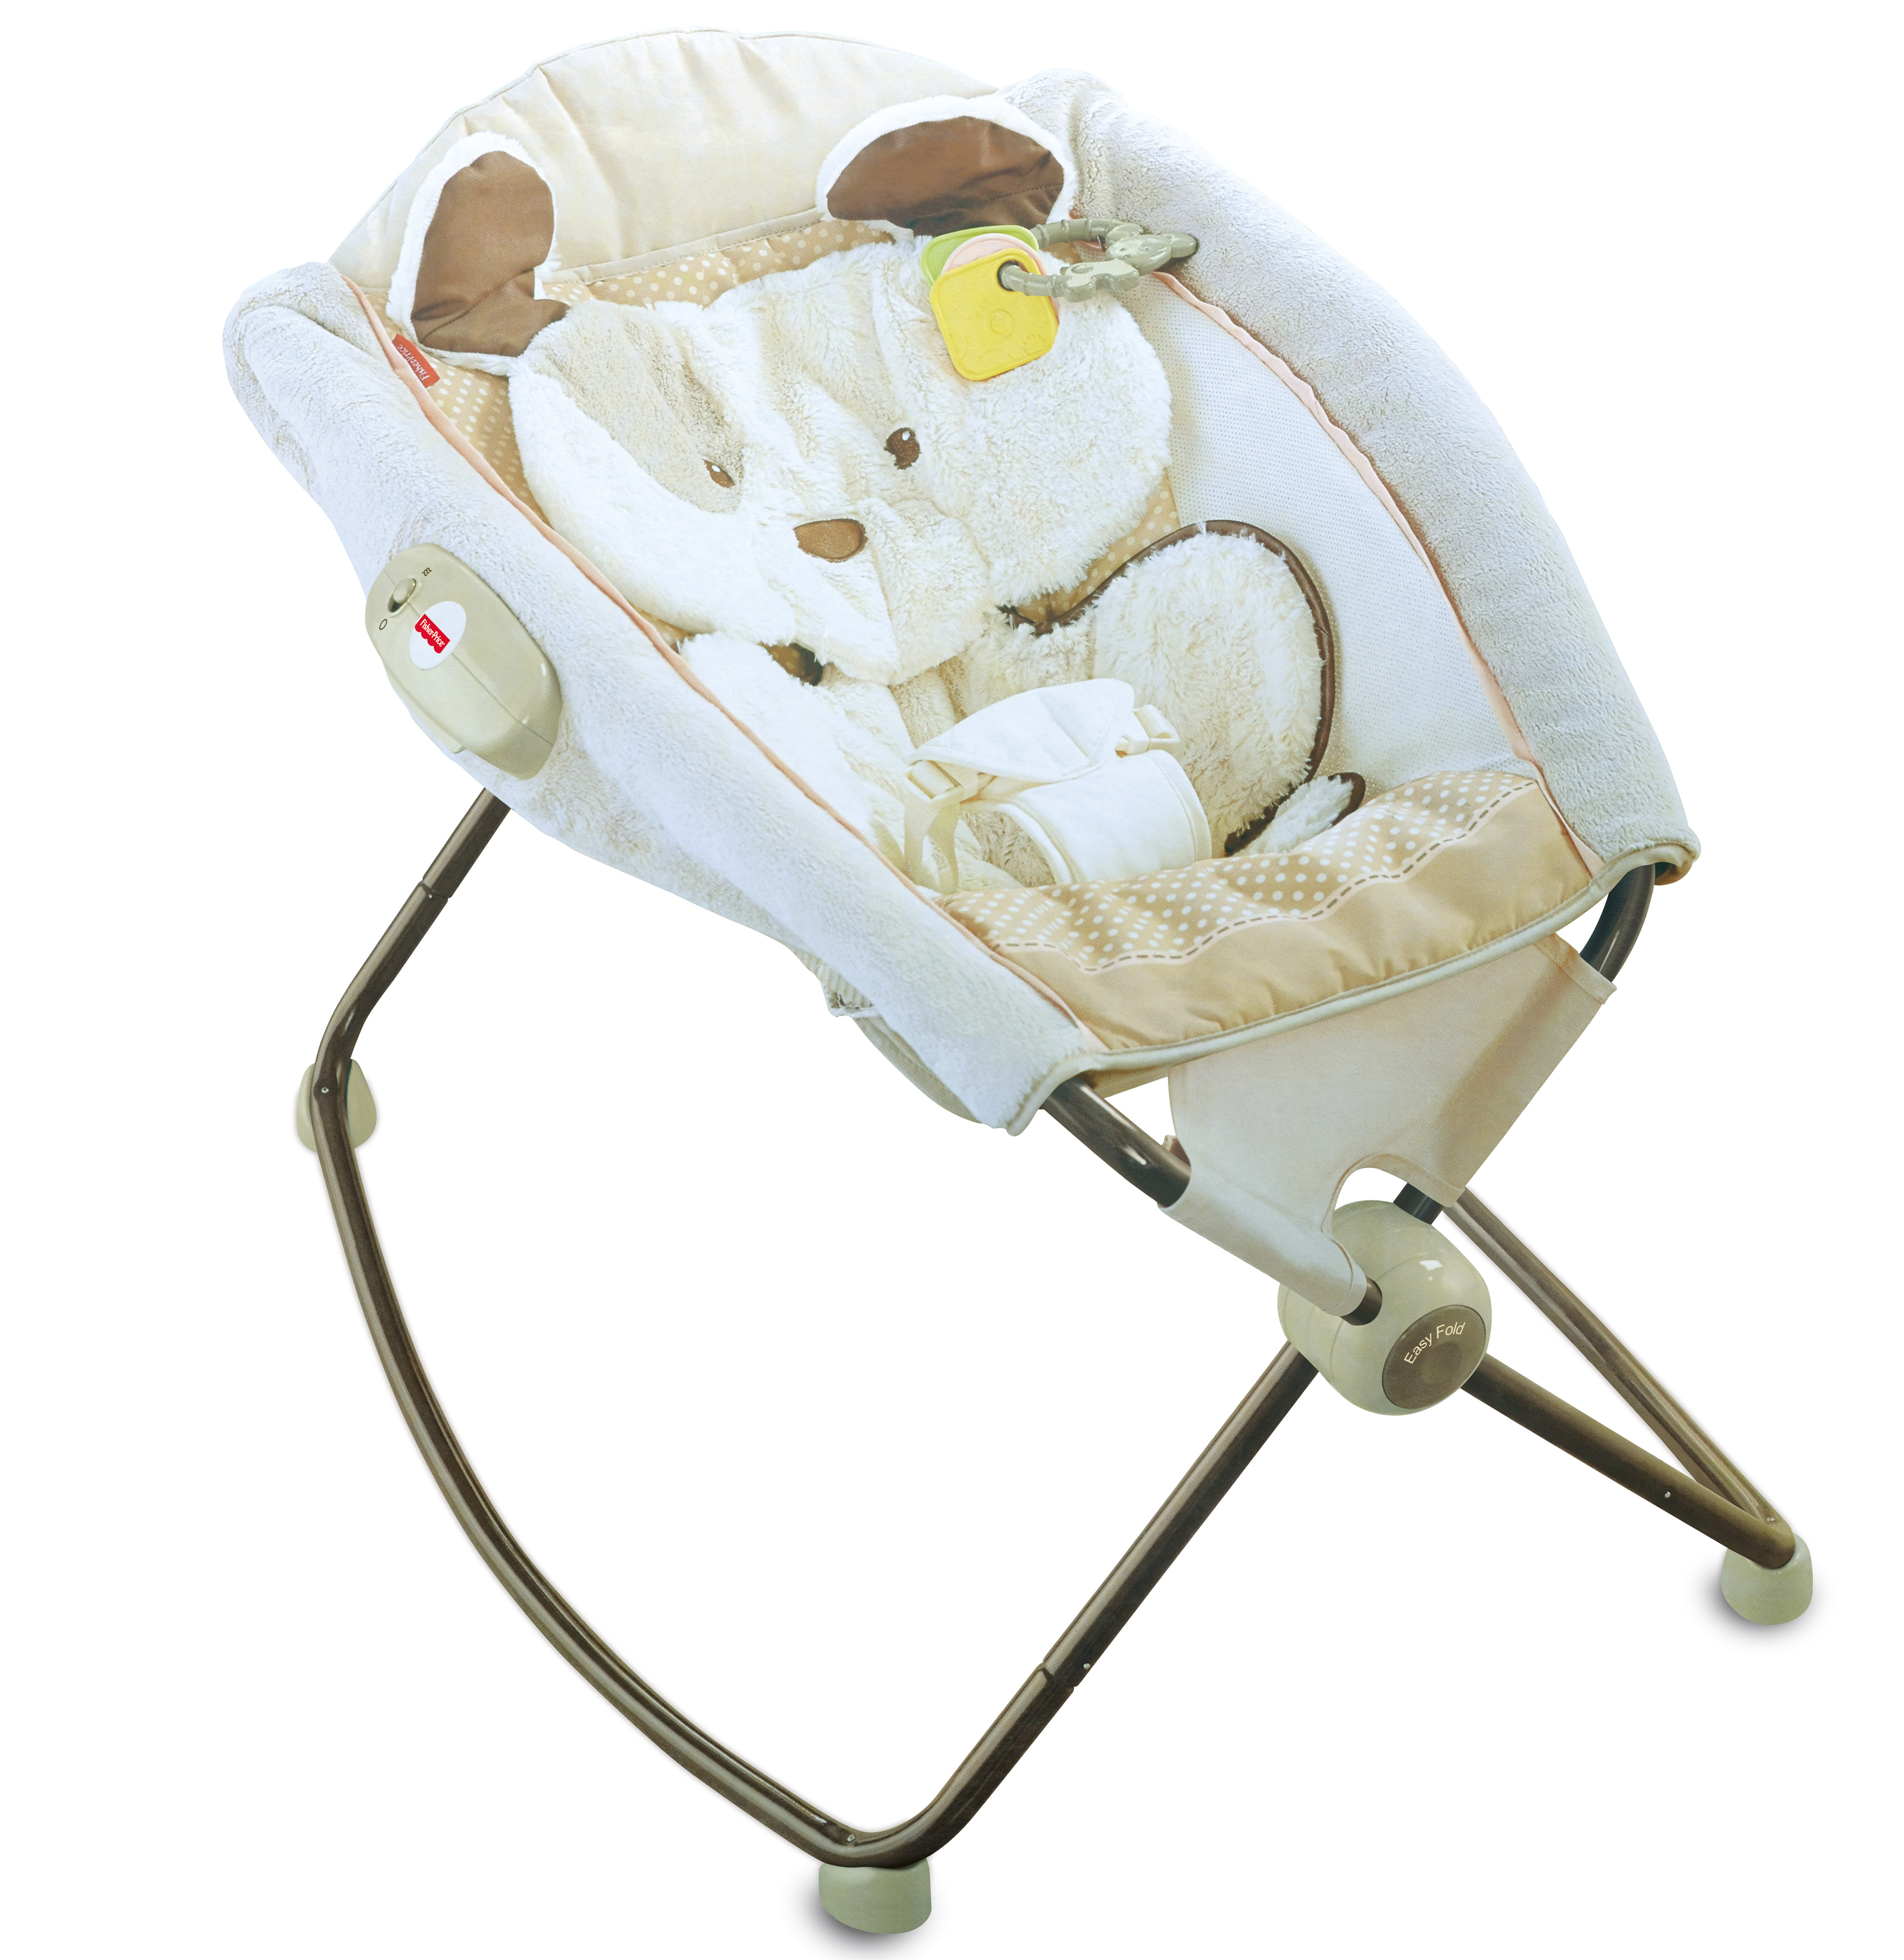 Electric baby rocker chair - Aeproduct Getsubject Super Soft Infant Rocking Chair